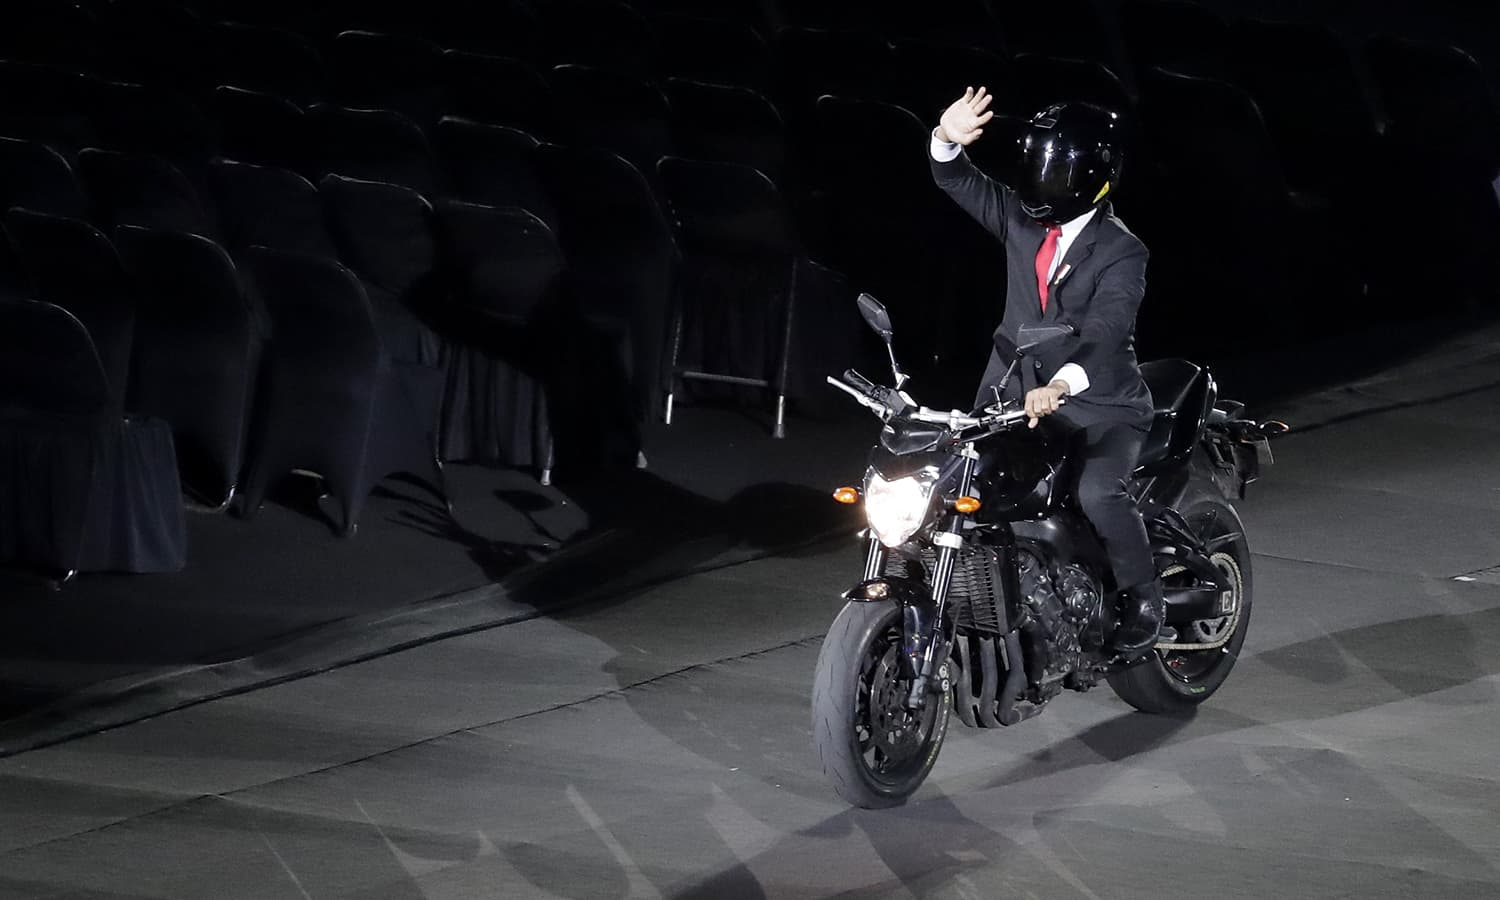 A helmeted rider representing President Joko Widodo doing stunts on a motorbike. —AP